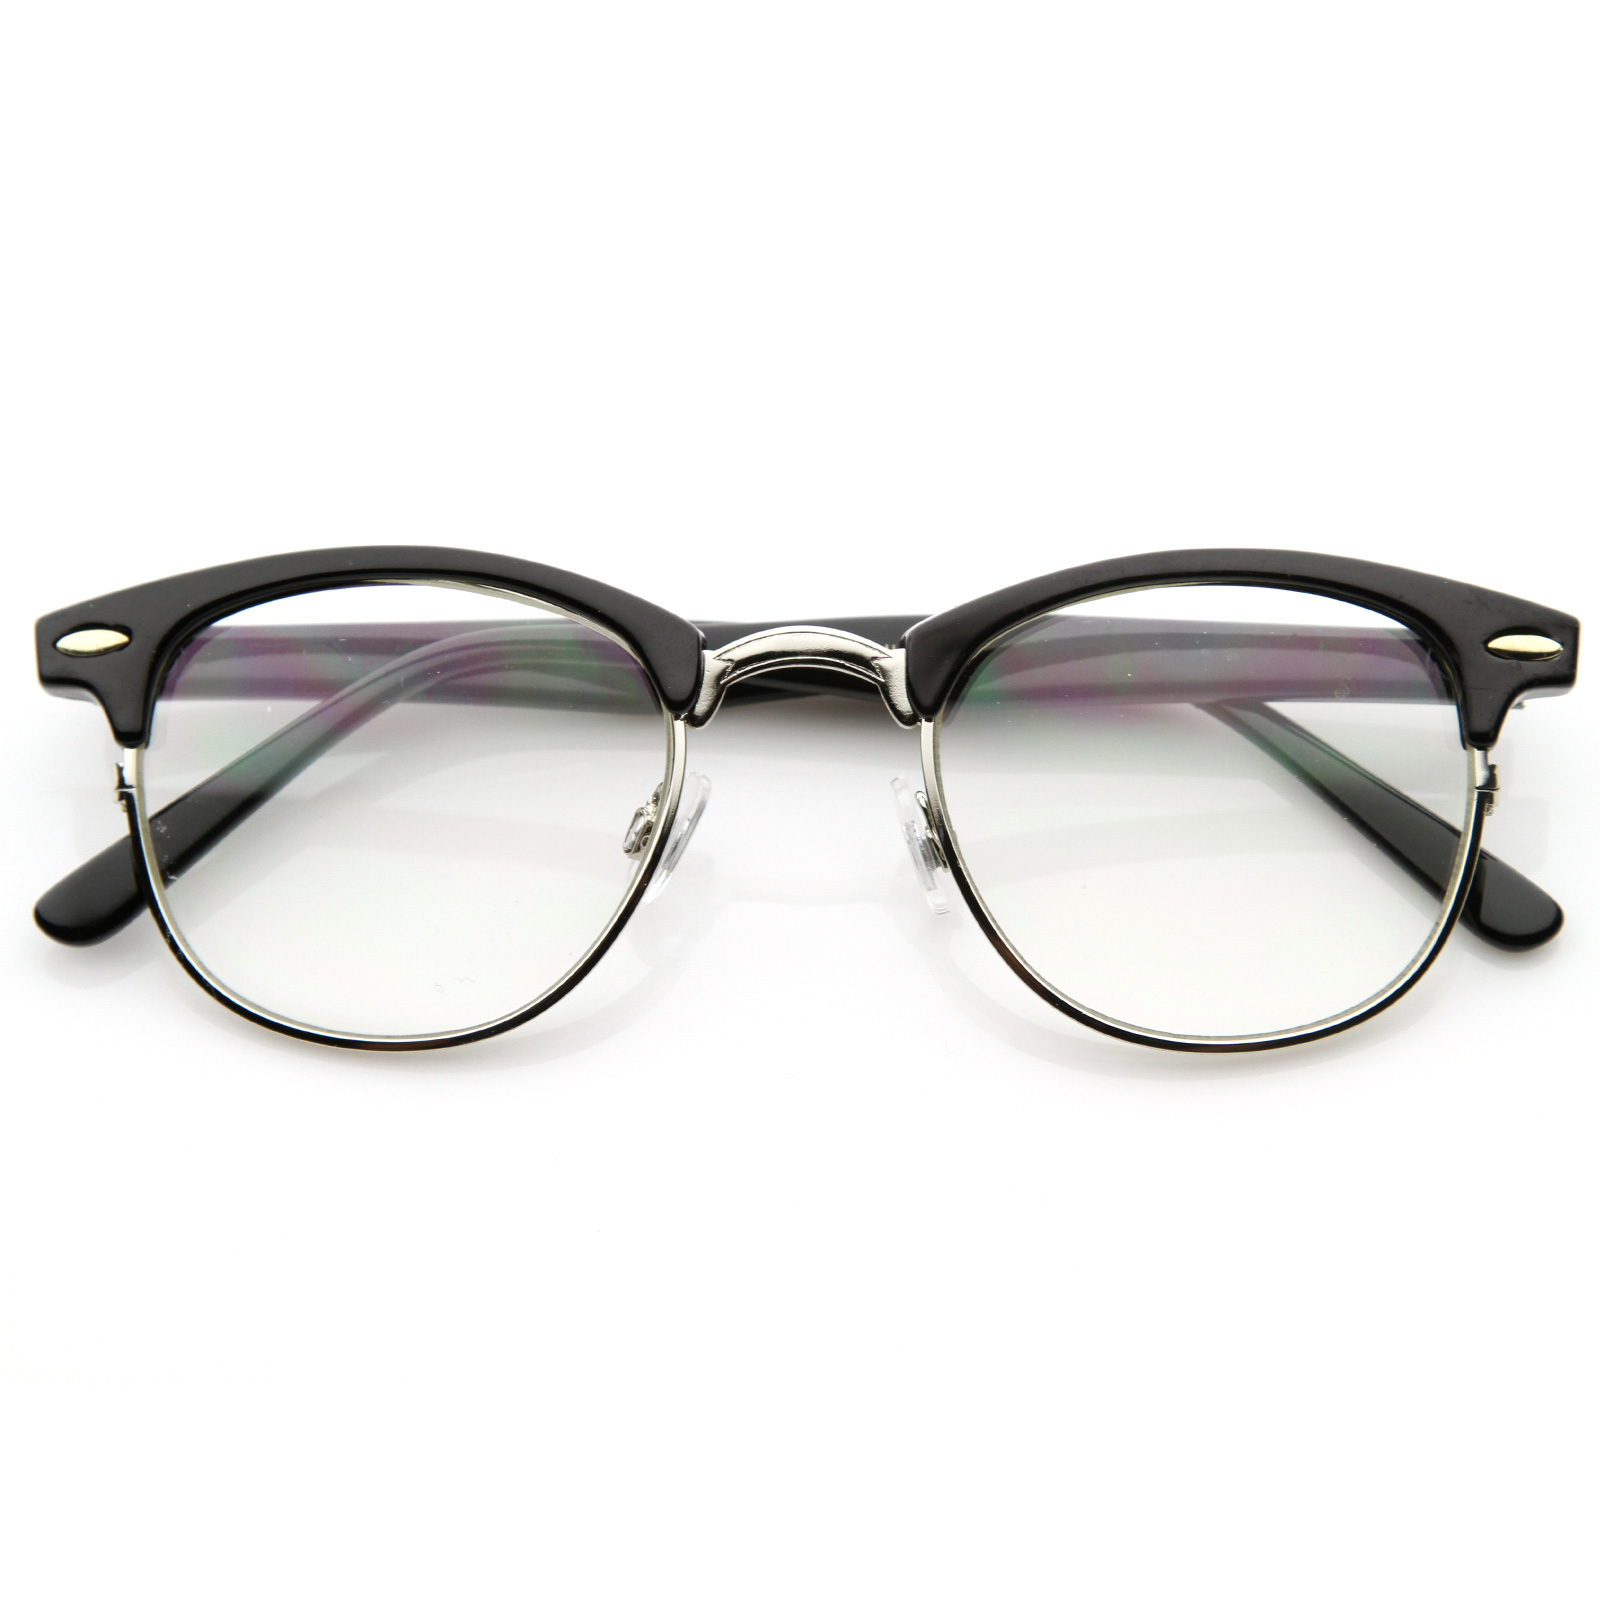 Half Frame Glasses Boots : New Original RX Optical Classical Clear Lens Half Frame ...